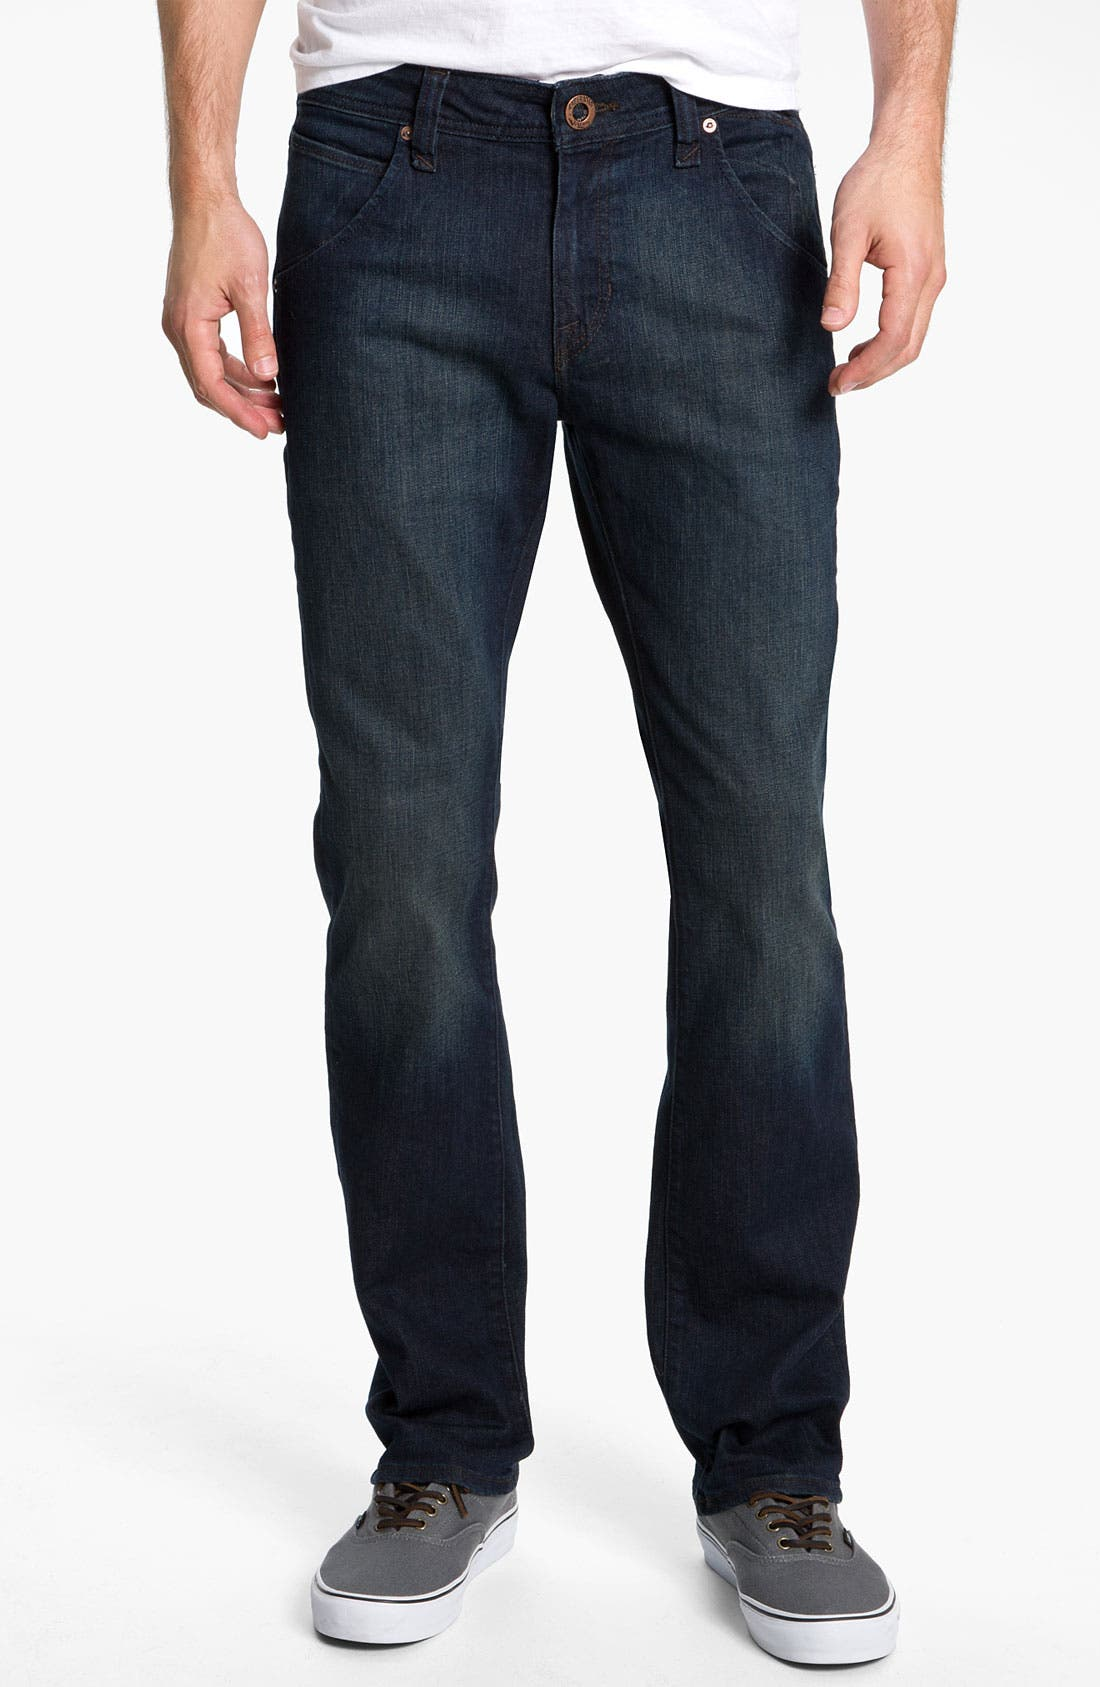 Alternate Image 2  - Volcom 'Nova' Slim Straight Leg Jeans (Dark Room Stretch) (Online Exclusive)